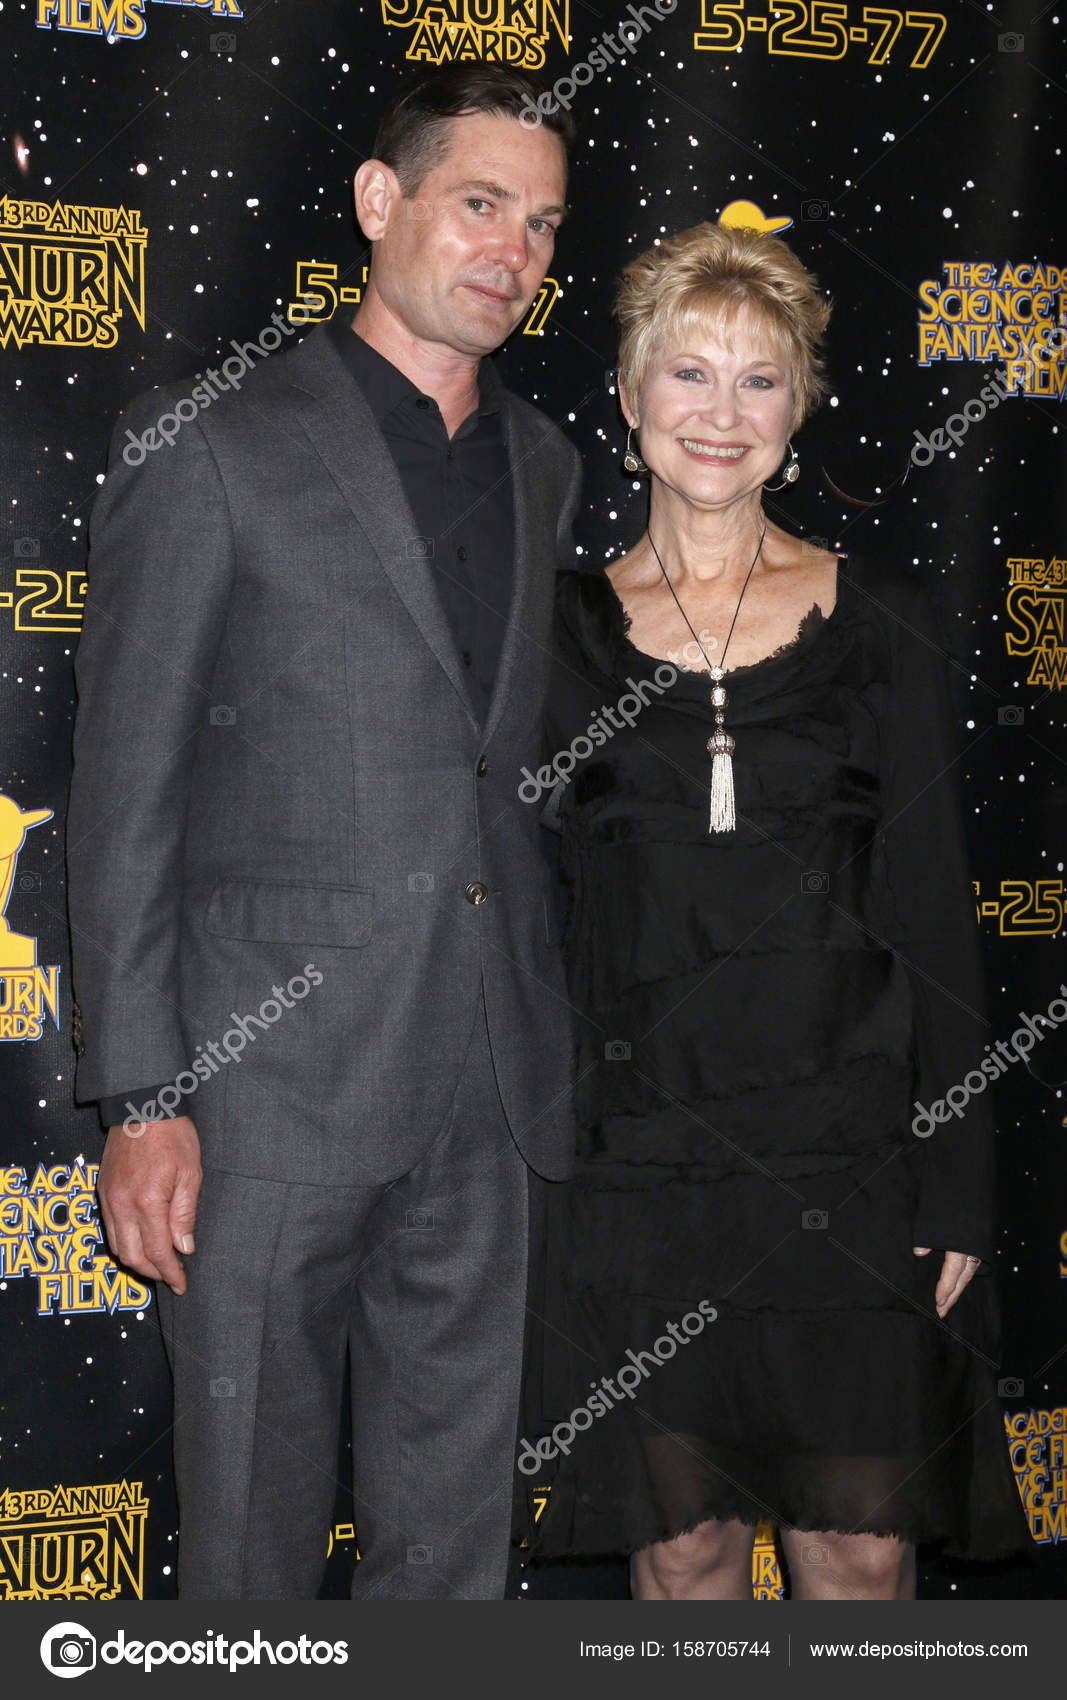 Discussion on this topic: Tara booher leaked photos, dee-wallace-saturn-awards-in-los-angeles/